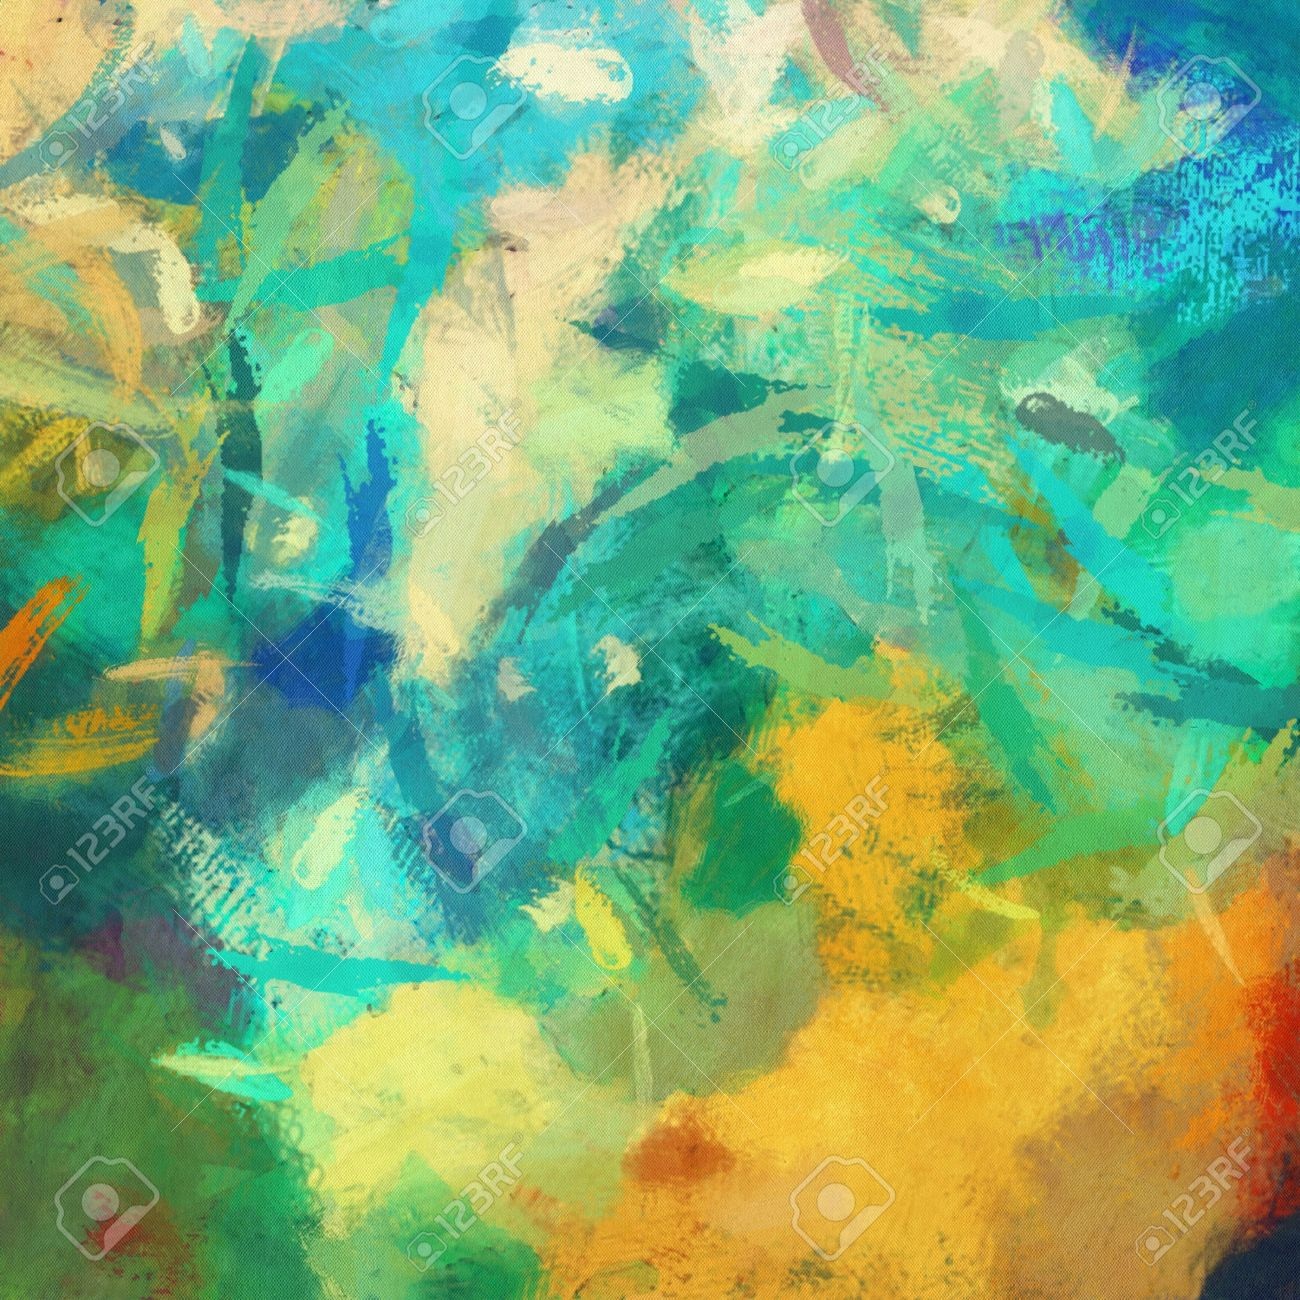 Art Abstract Painted Background With Green Blue And Orange Blots